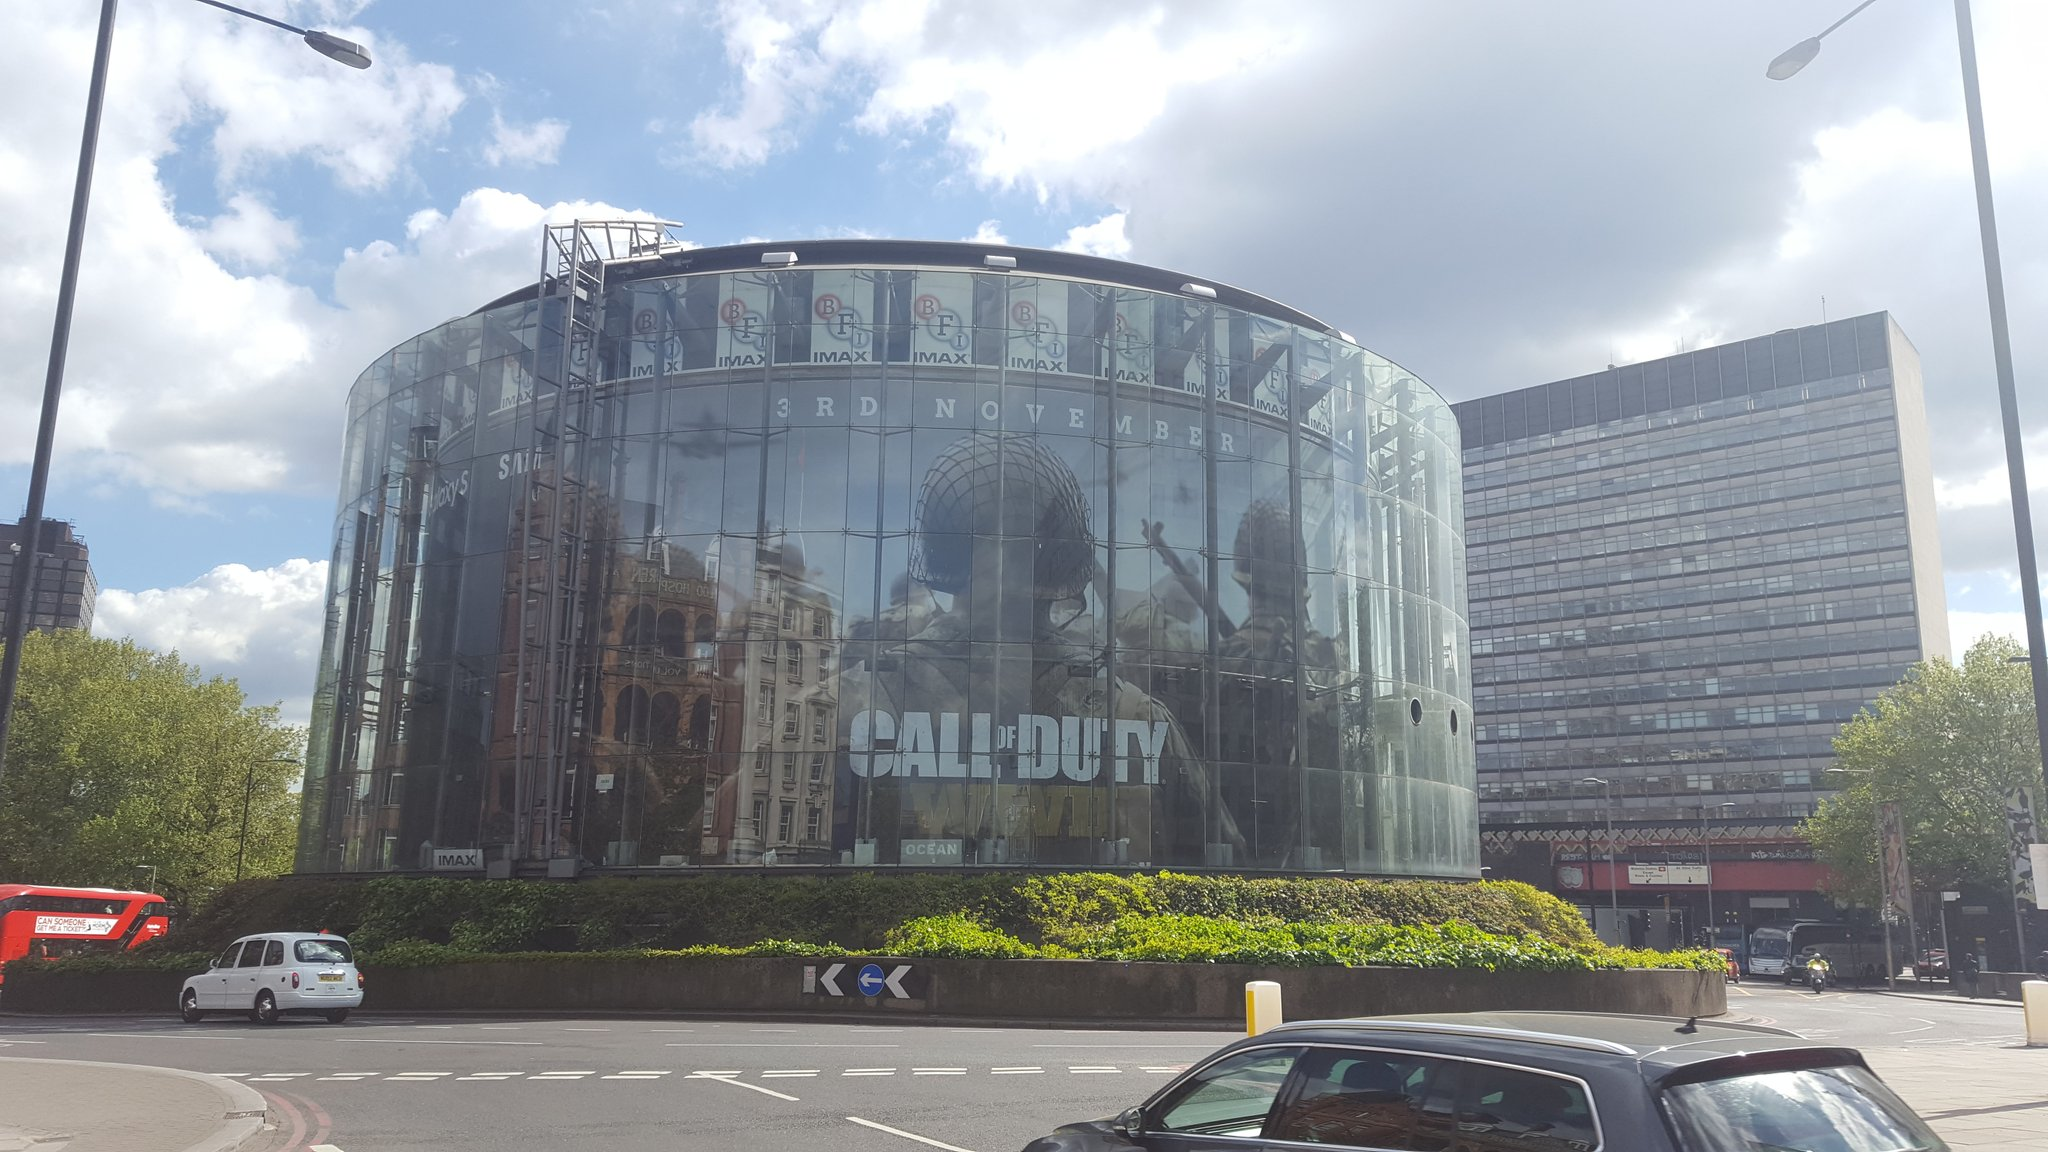 New call of duty commercial - Big Billboard Advertisements For The Game Have Started To Appear In Both Paris And London With The Entire Bf Imax In London Covered With Wwii Ads Across